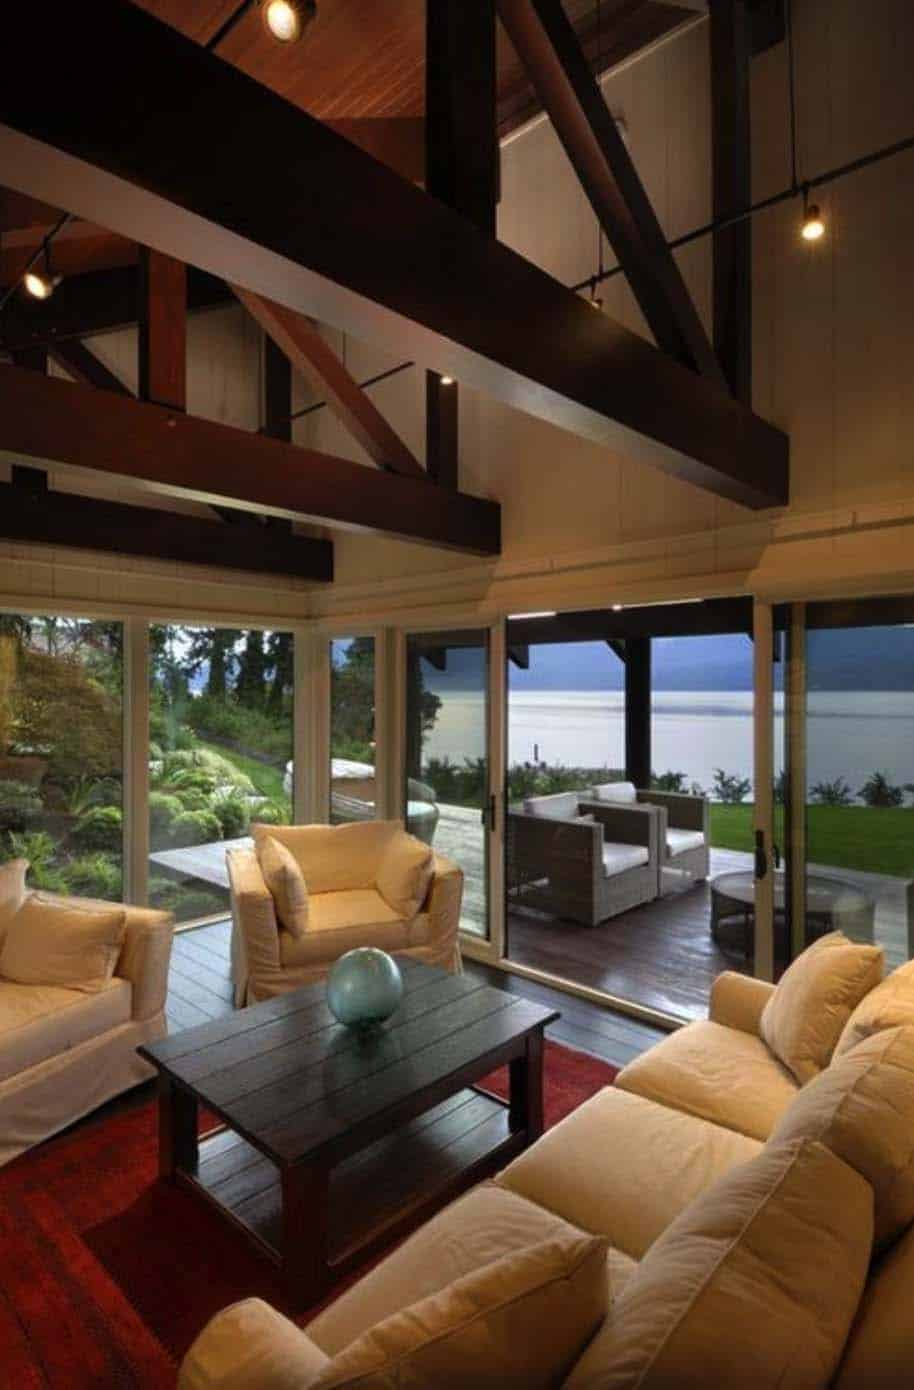 vancouver-island-residence-mckinley-burkart-architects-03-1-kindesign